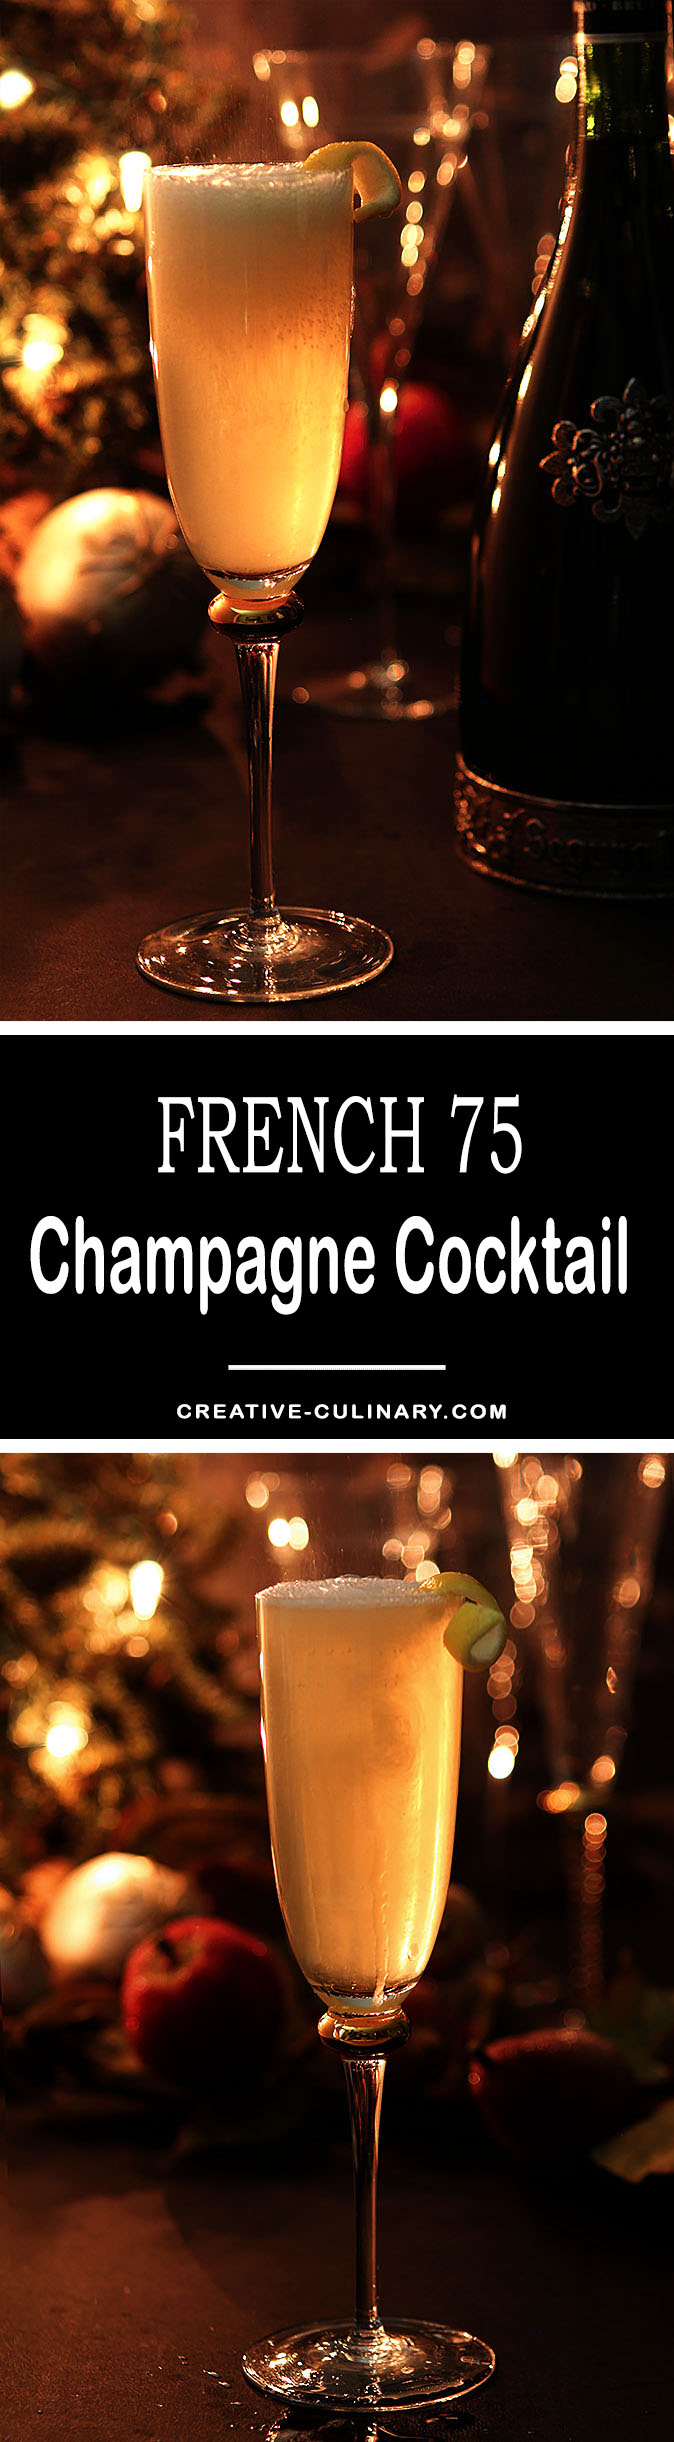 The French 75 Champagne Cocktail is an elegant cocktail with a history; perfect for any celebration but we especially love to serve them on New Year's Eve.